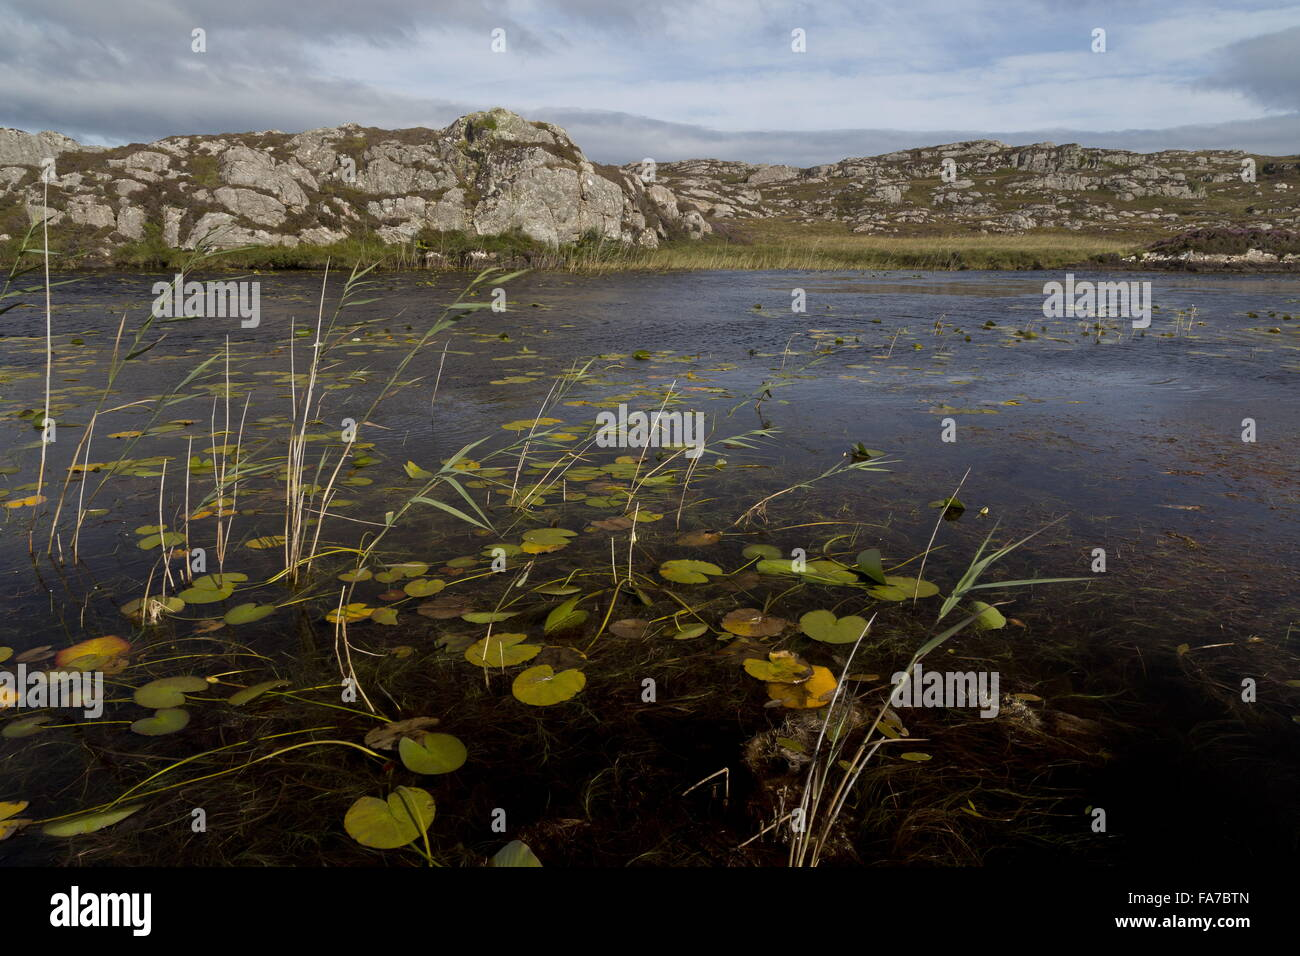 A remote clean unpolluted well-vegetated acidic loch, Loch a Mhill Aird, the island of Coll, Inner Hebrides, Scotland. - Stock Image